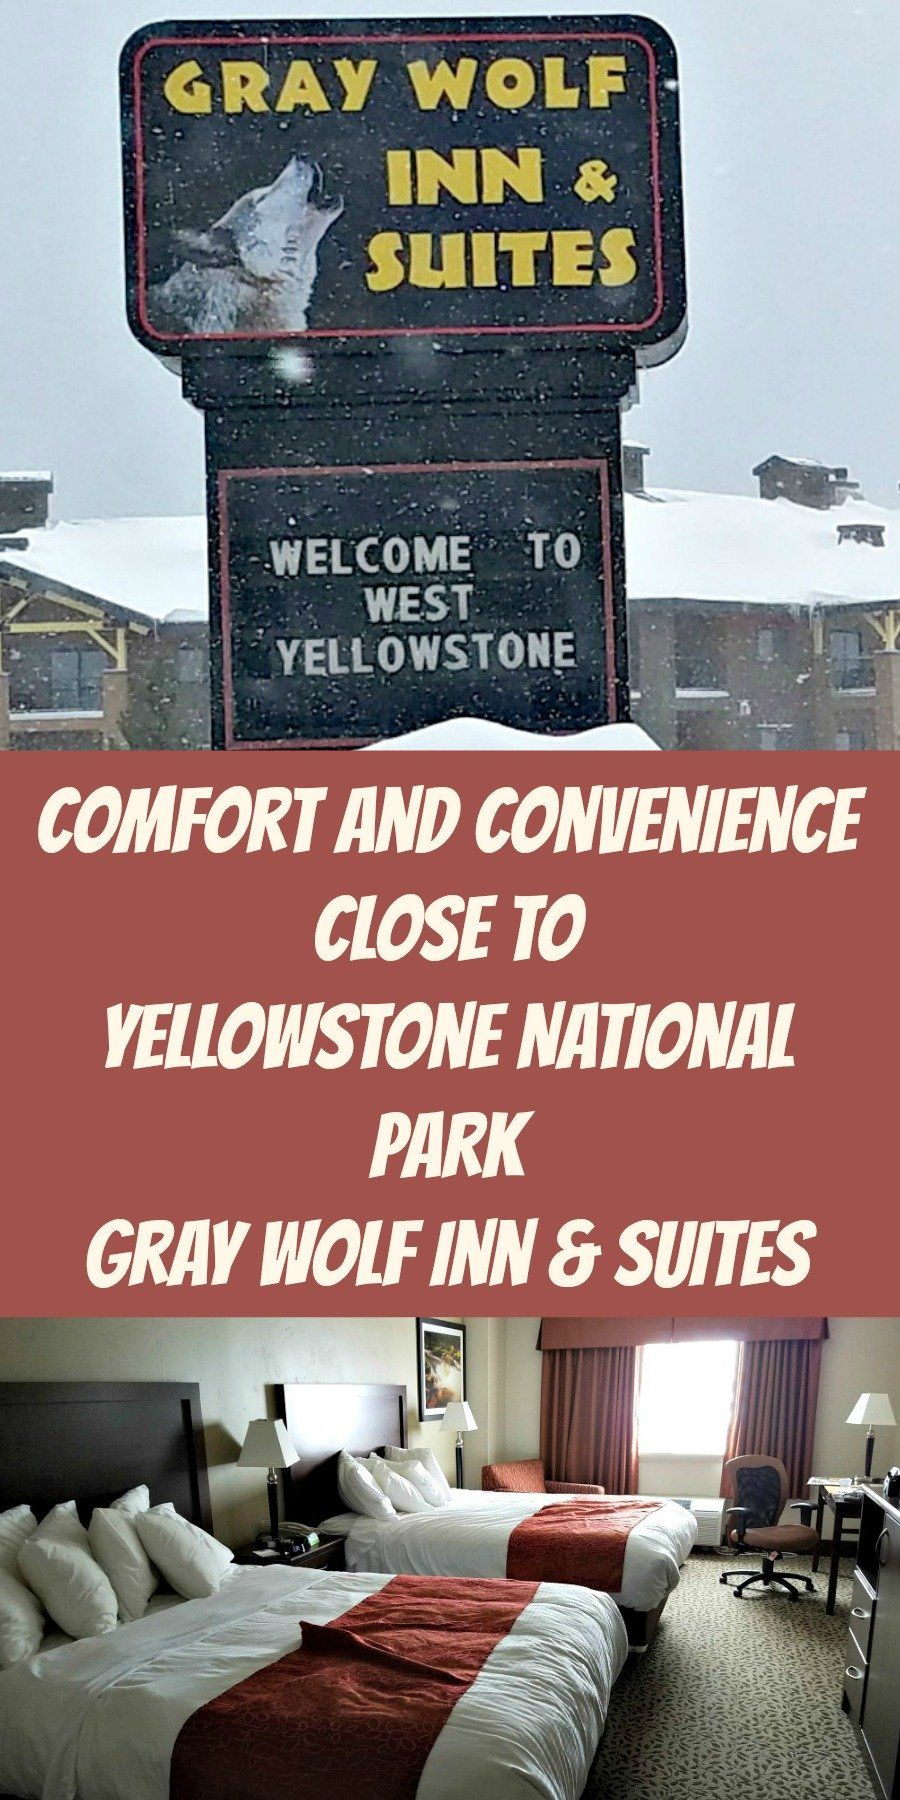 Gray Wolf Inn And Suites Comfort And Convenience From A West